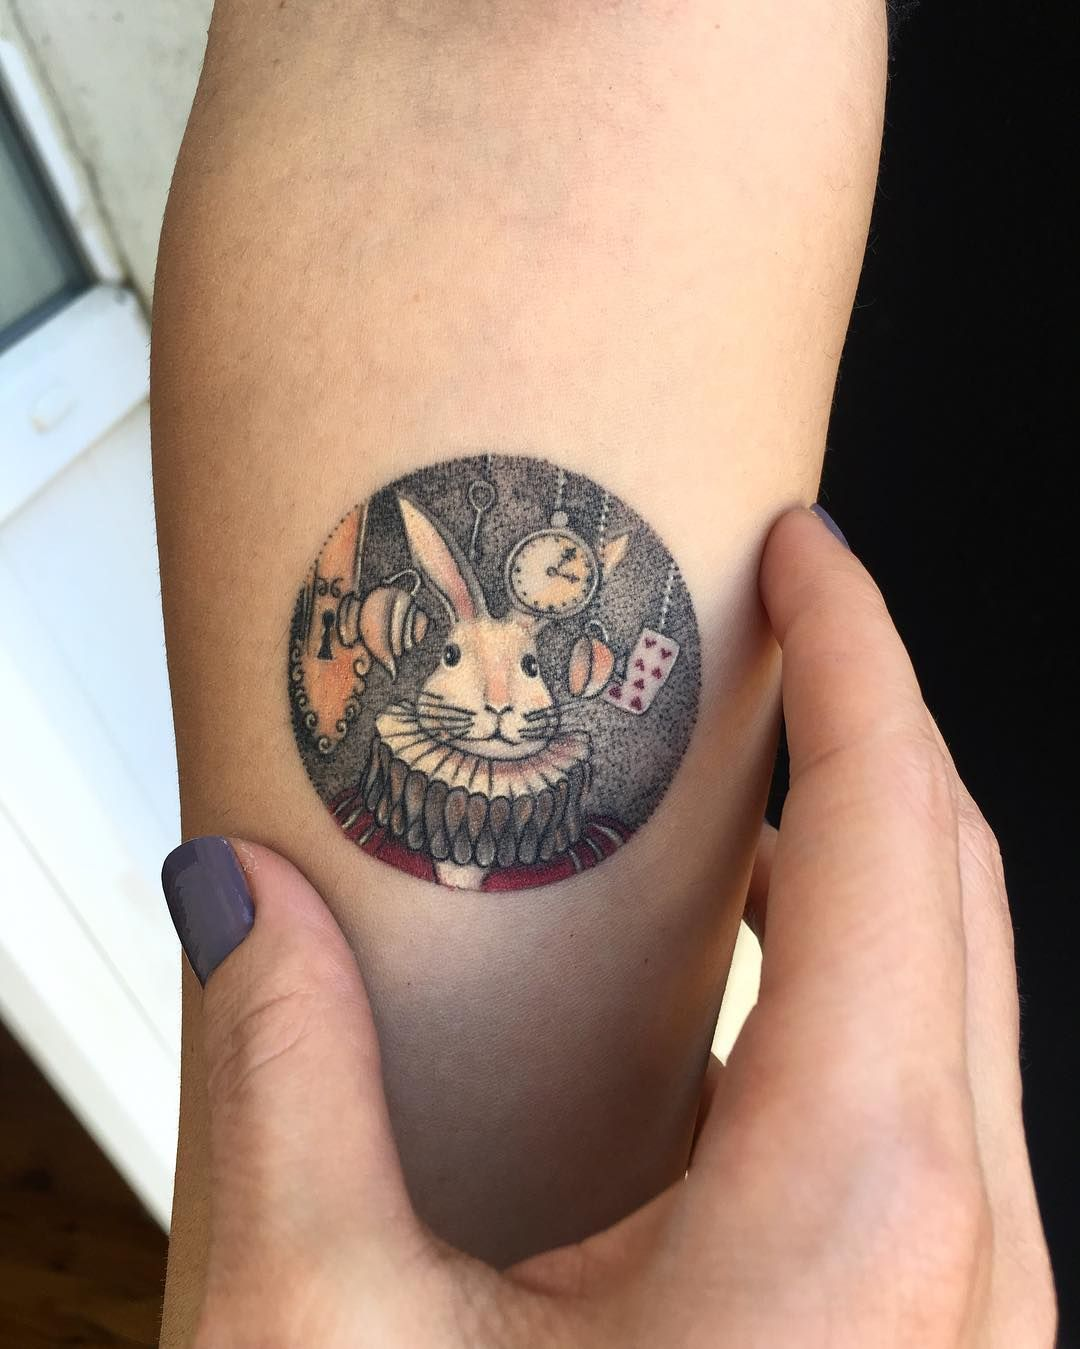 Circle Tattoos Are Magical Little Vignettes And People Are Falling In Love With This One Artist S Exquisite Crea Circular Tattoo Circle Tattoos Rabbit Tattoos